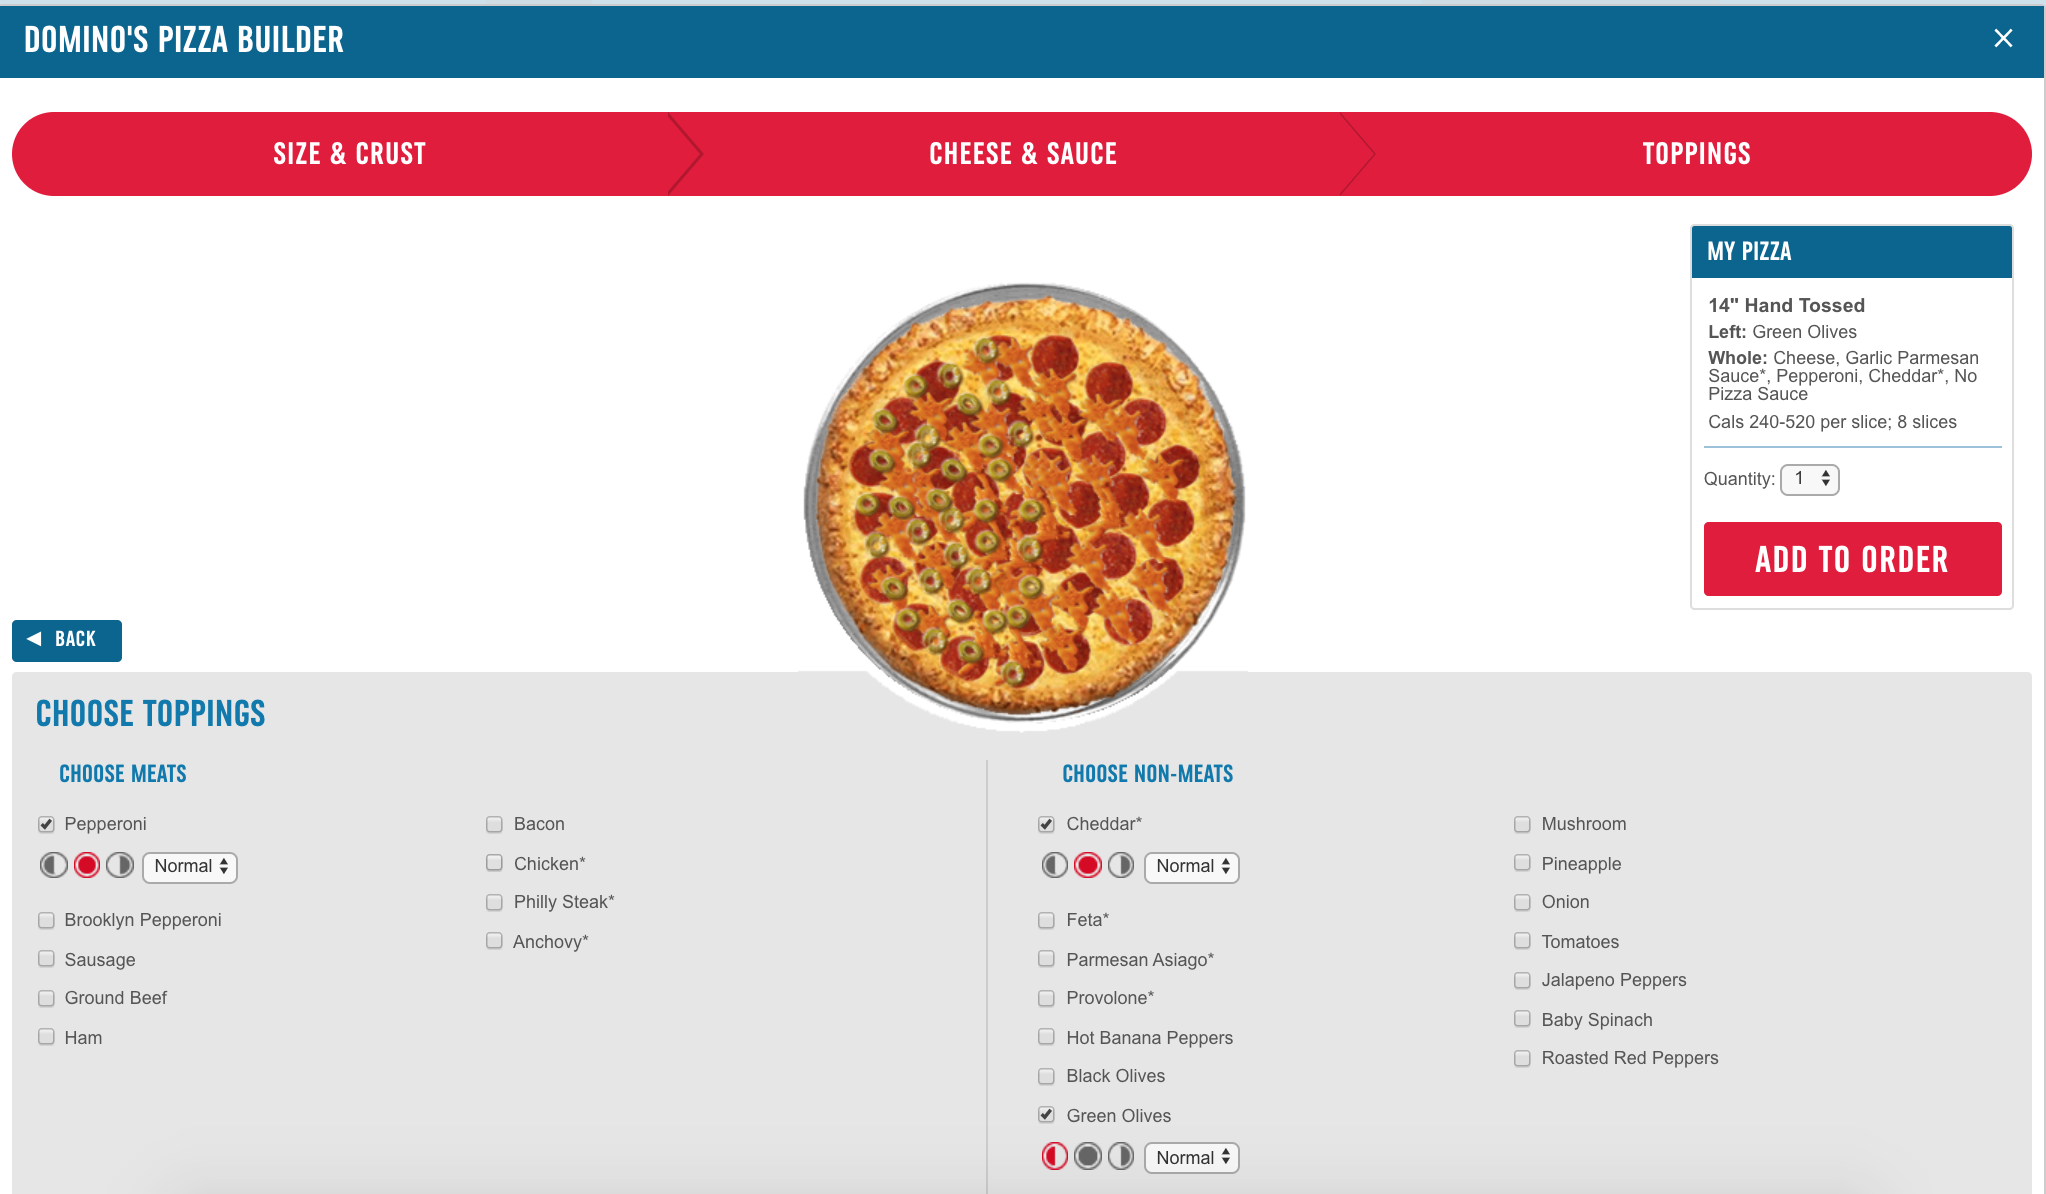 A screenshot of the dominos custom pizza builder